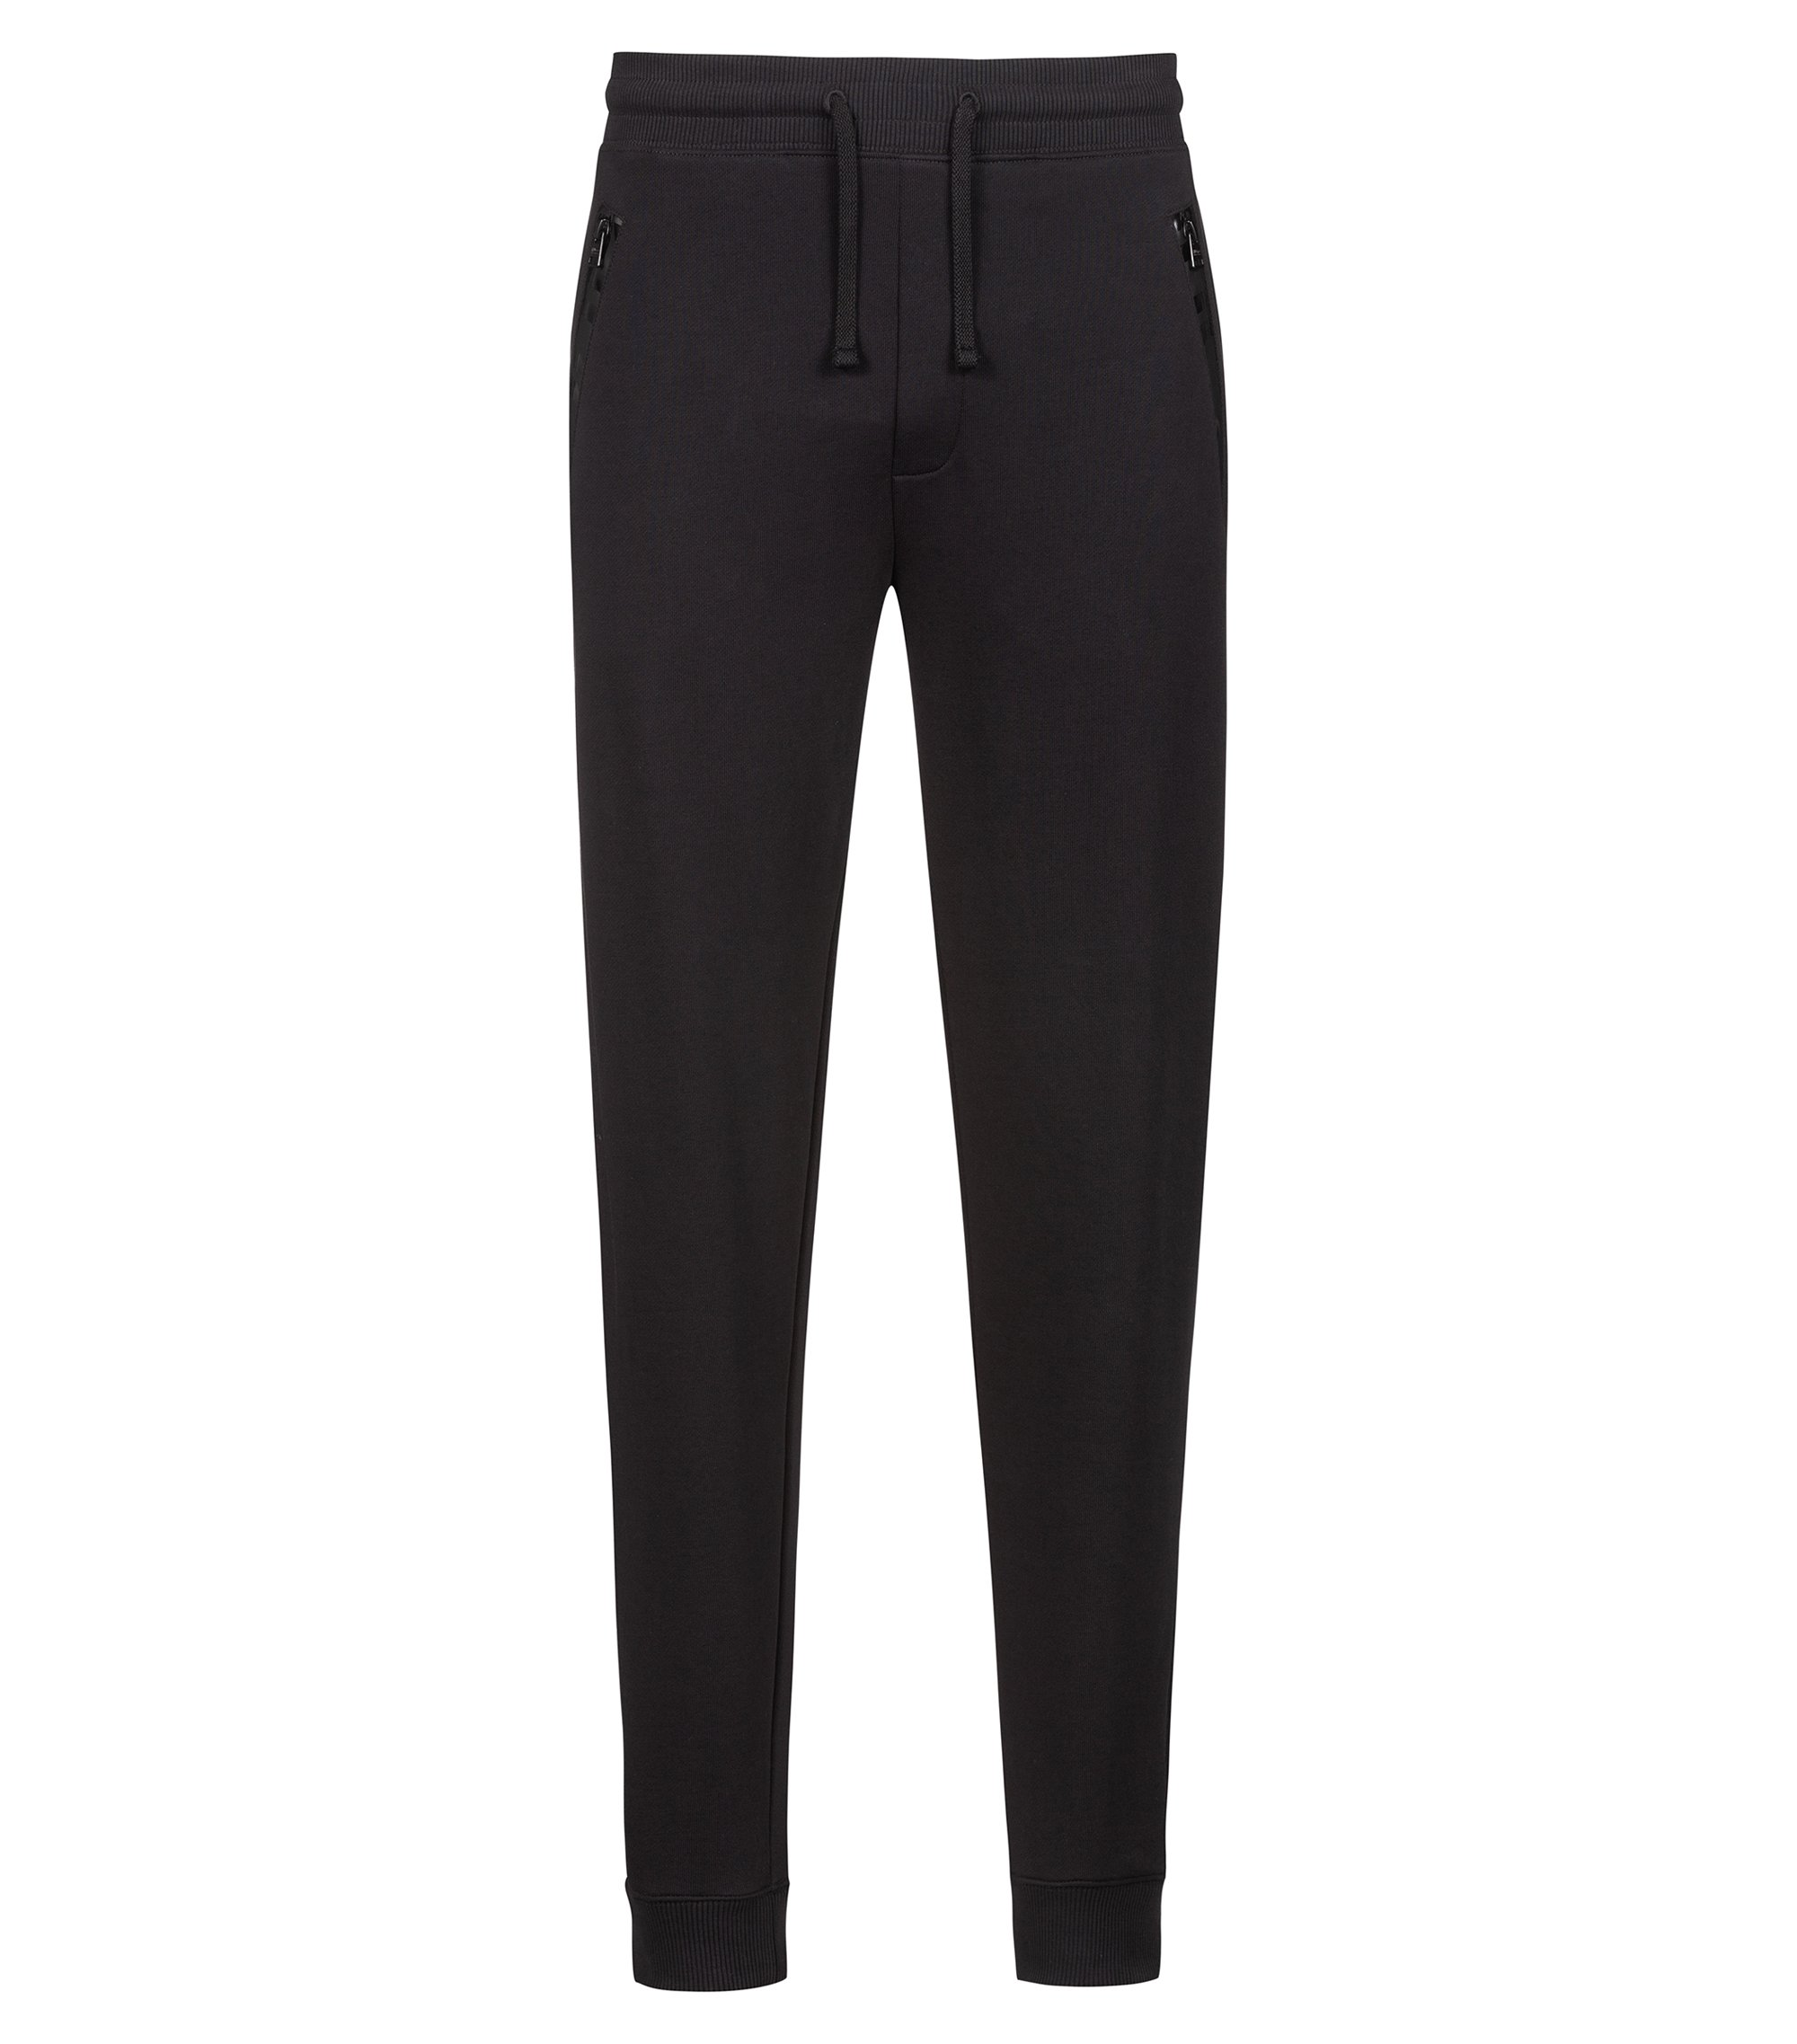 French-terry pants with logo-tape zippered pockets, Black